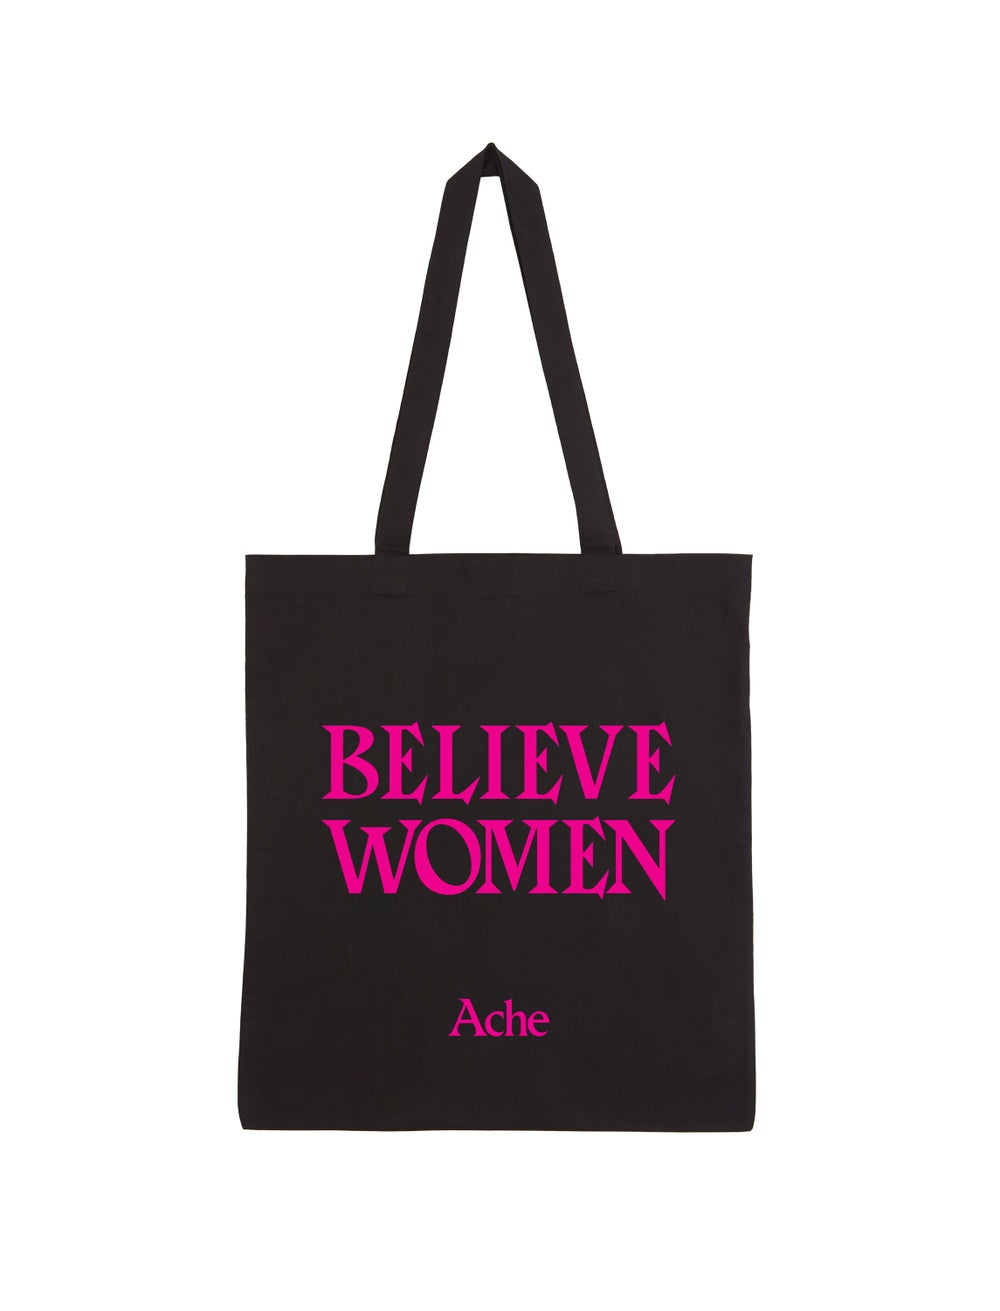 Image of Ache tote-bag